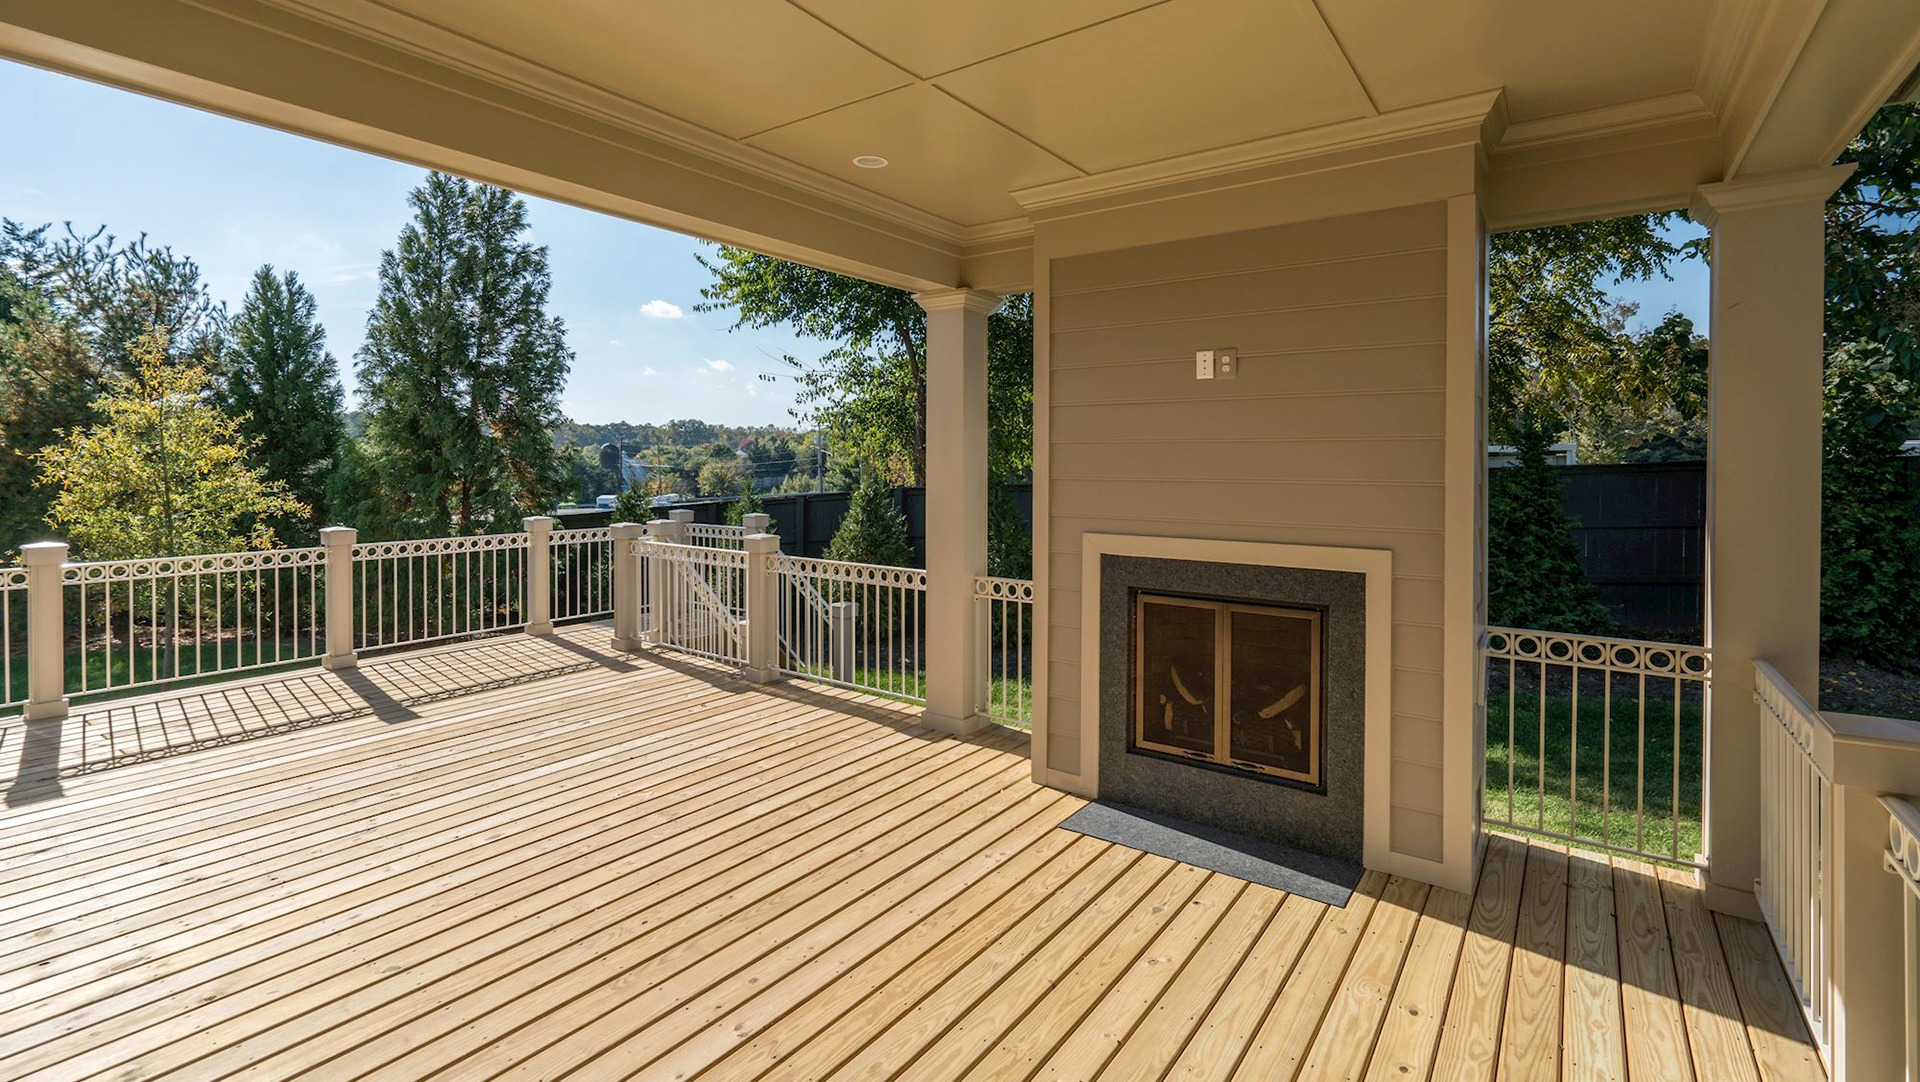 The Custom Lanai (covered deck) in the Grayson on Fallsgate Homesite 4. Some optional features shown.